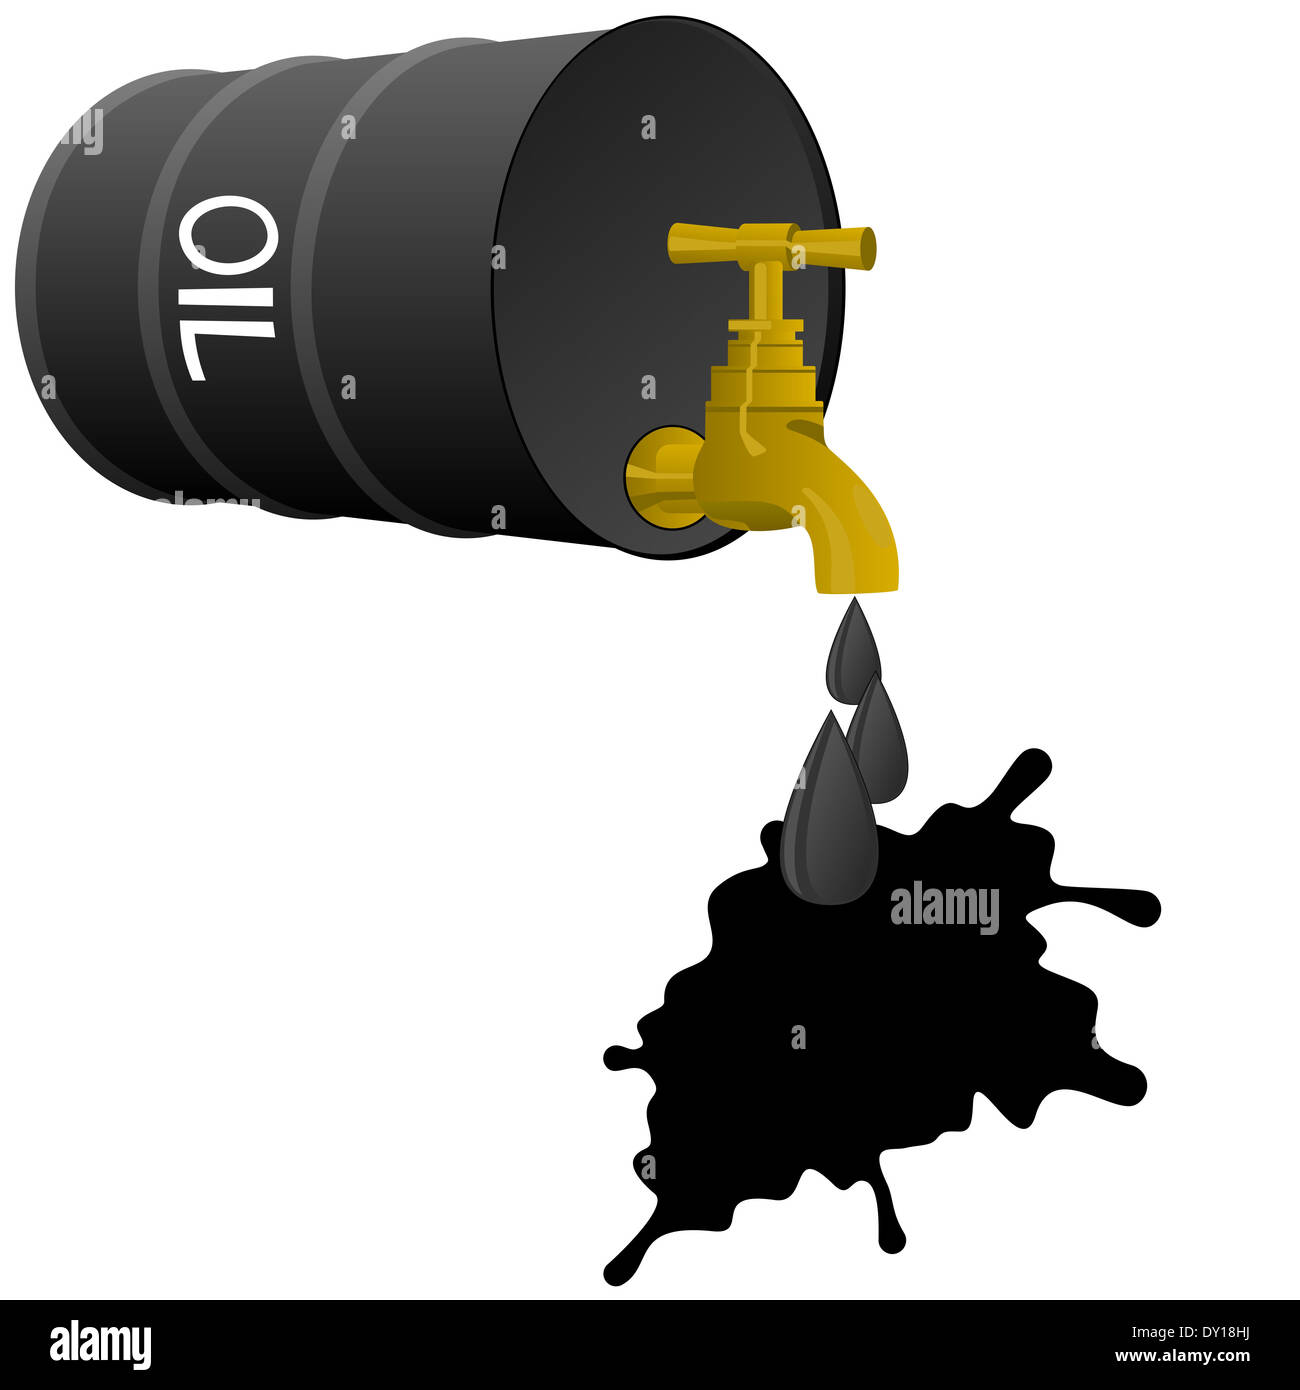 Barrel of oil products and stopcock dripping drops of oil. Illustration on white background. - Stock Image